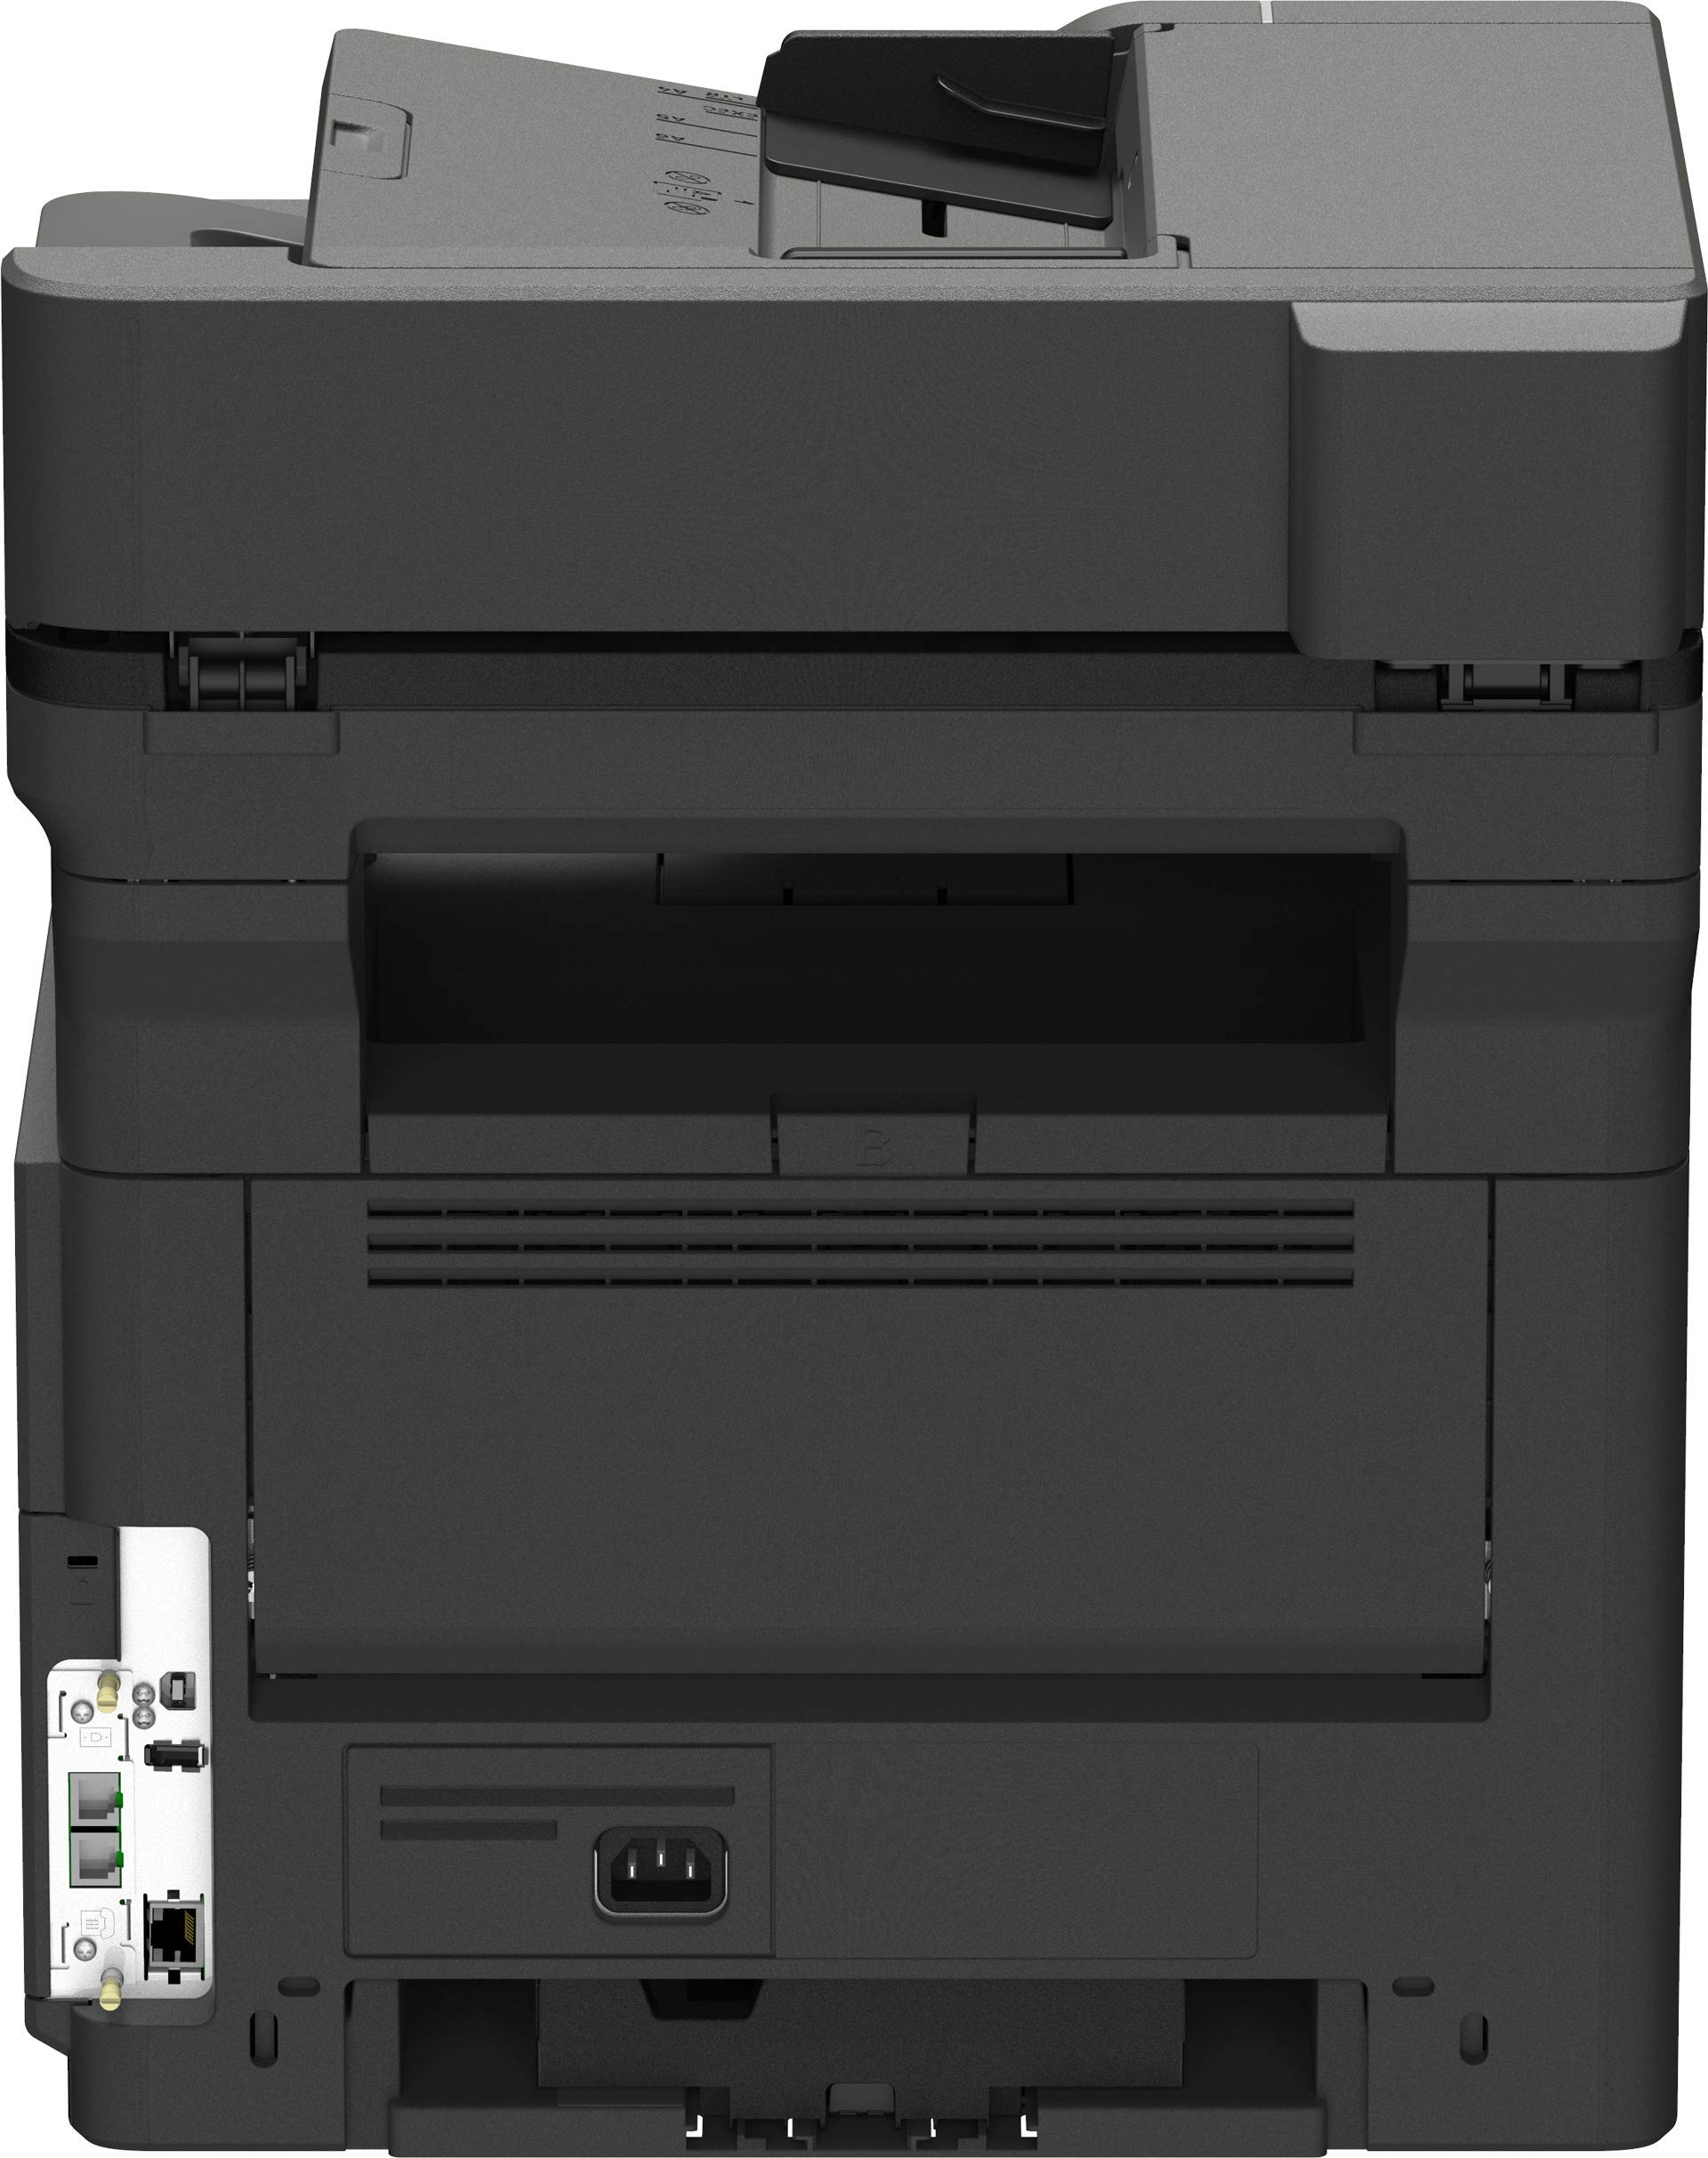 Lexmark MB2442adwe Monochrome Multifunction Printer with fax scan Copy Interactive Touch Screen Wi-Fi and Air Print Capabilities (36SC720) by Lexmark (Image #5)